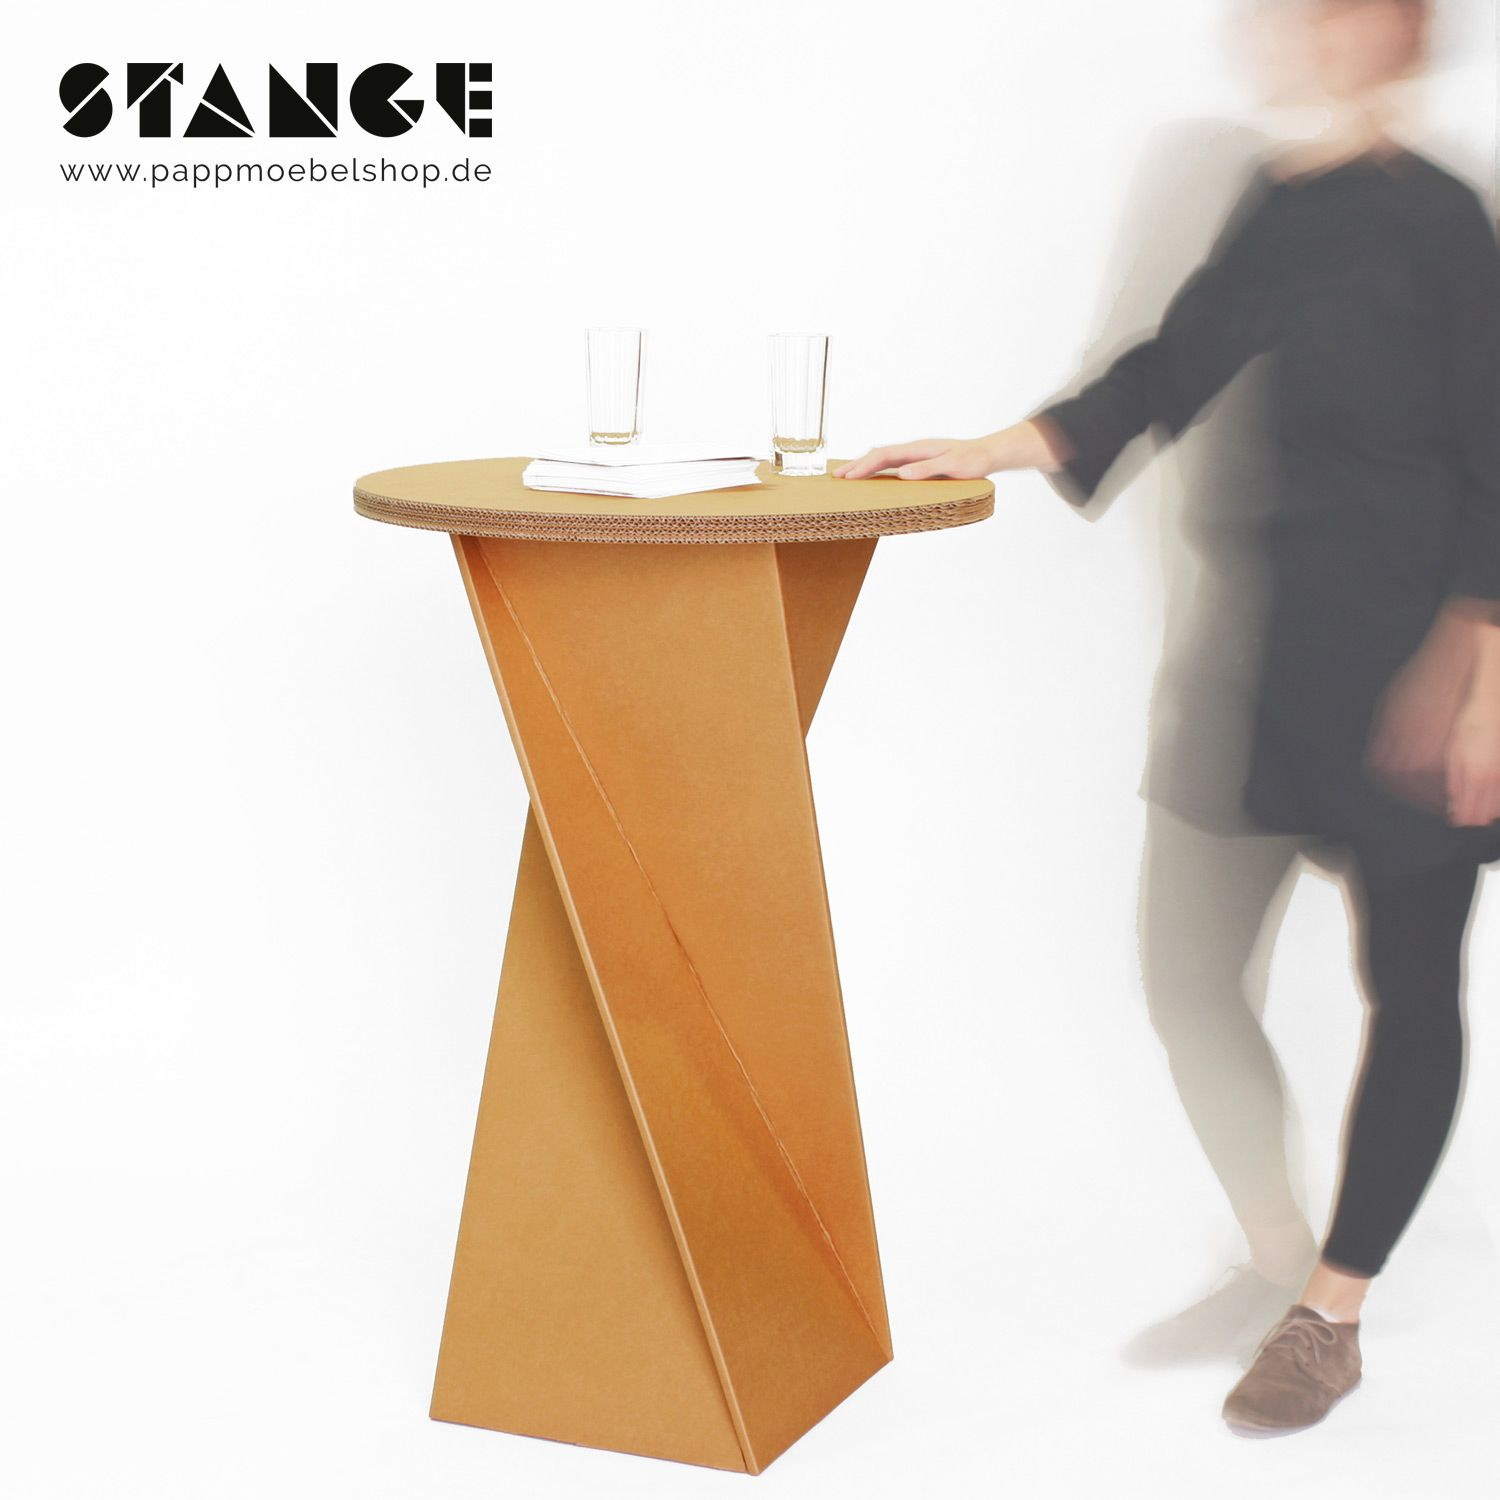 Stehtisch Holz Klappbar Stehtisch Twist Upcycling Furniture Design Furniture Und Table